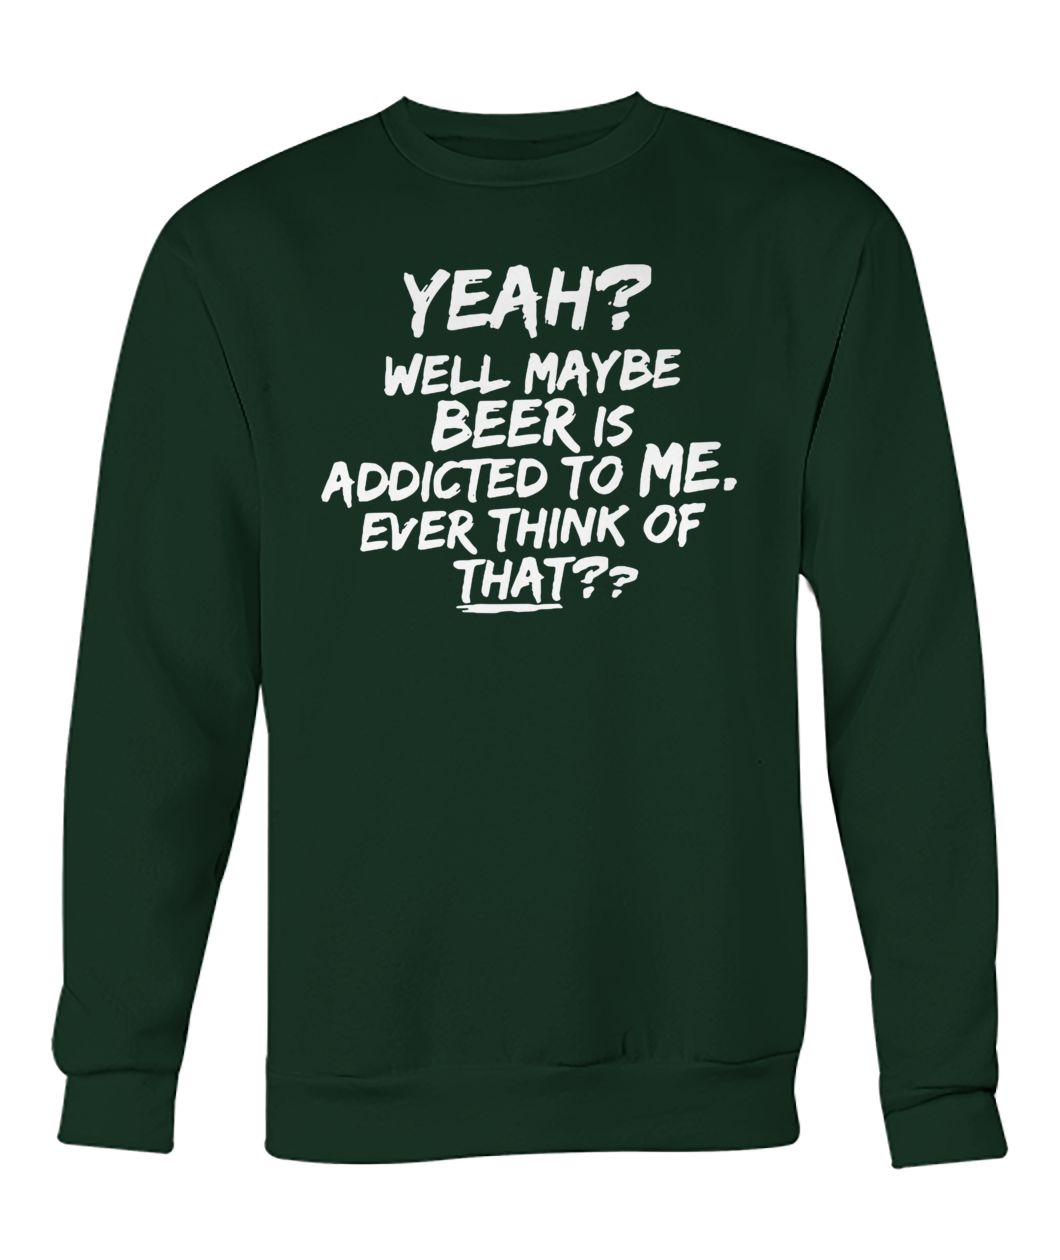 Yeah well maybe beer is addicted to me ever think of that crew neck sweatshirt